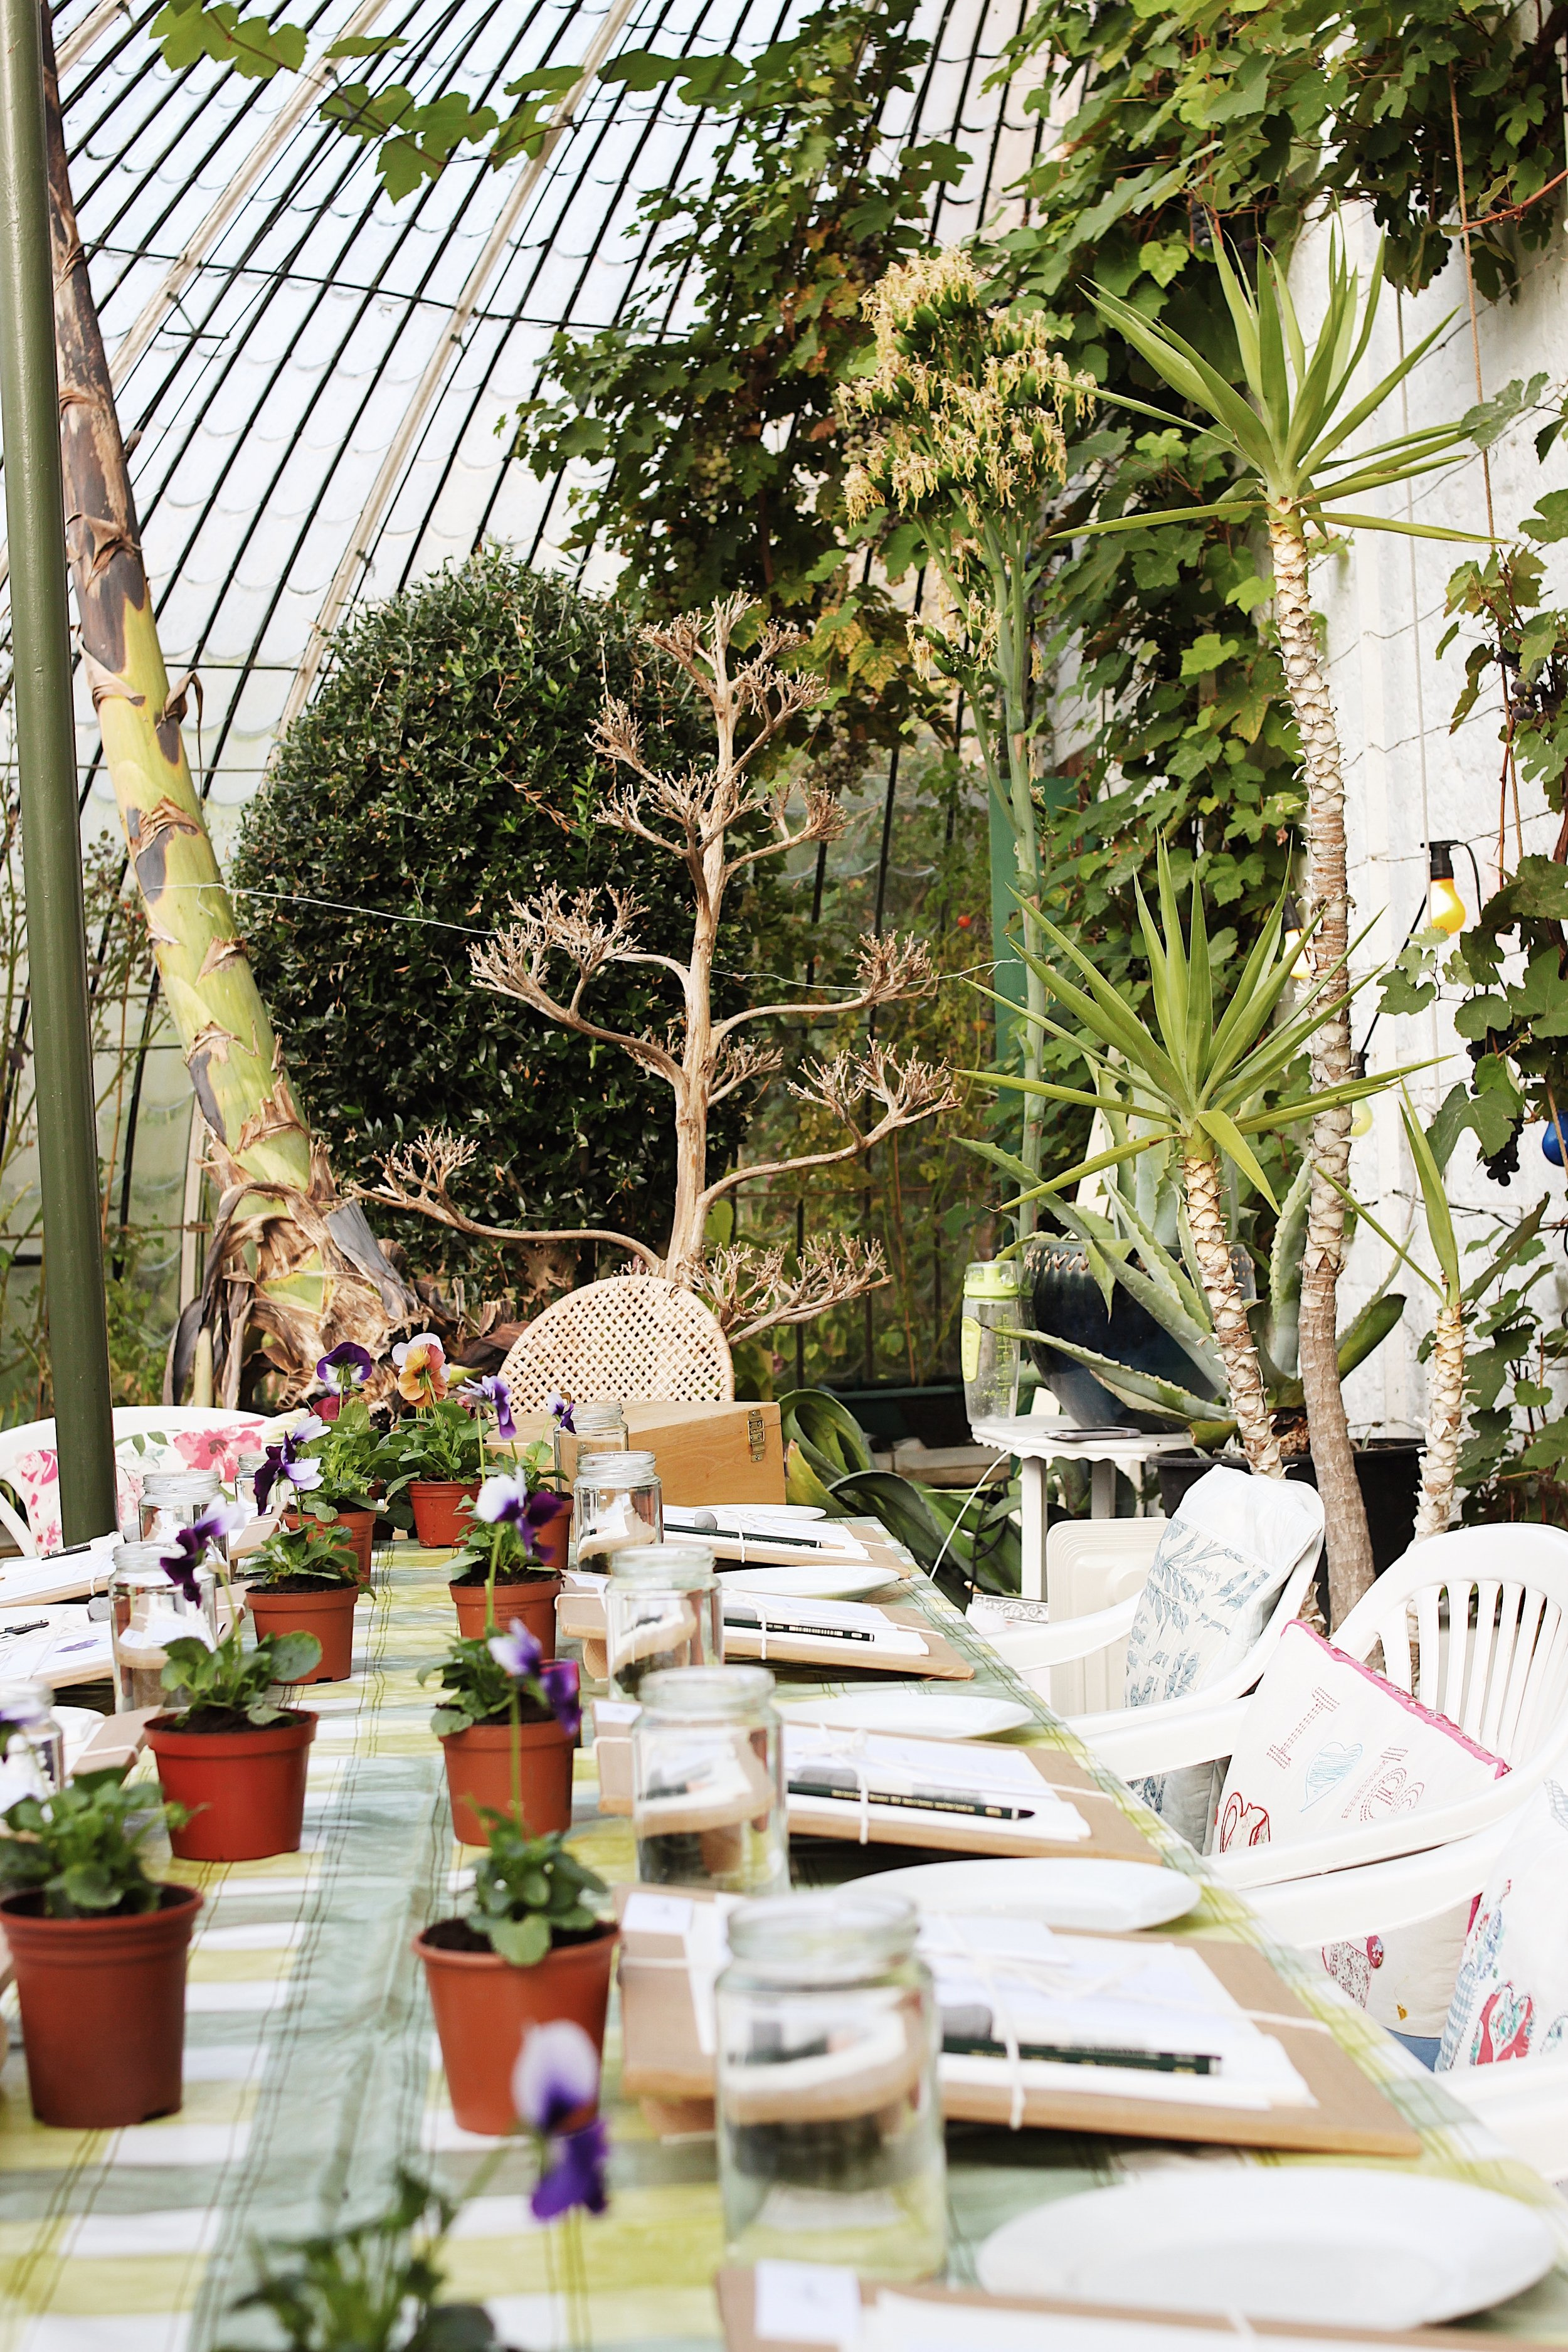 Our set up at the previous workshop at the Italianate Glasshouse. To read about this workshop, take a look  here!